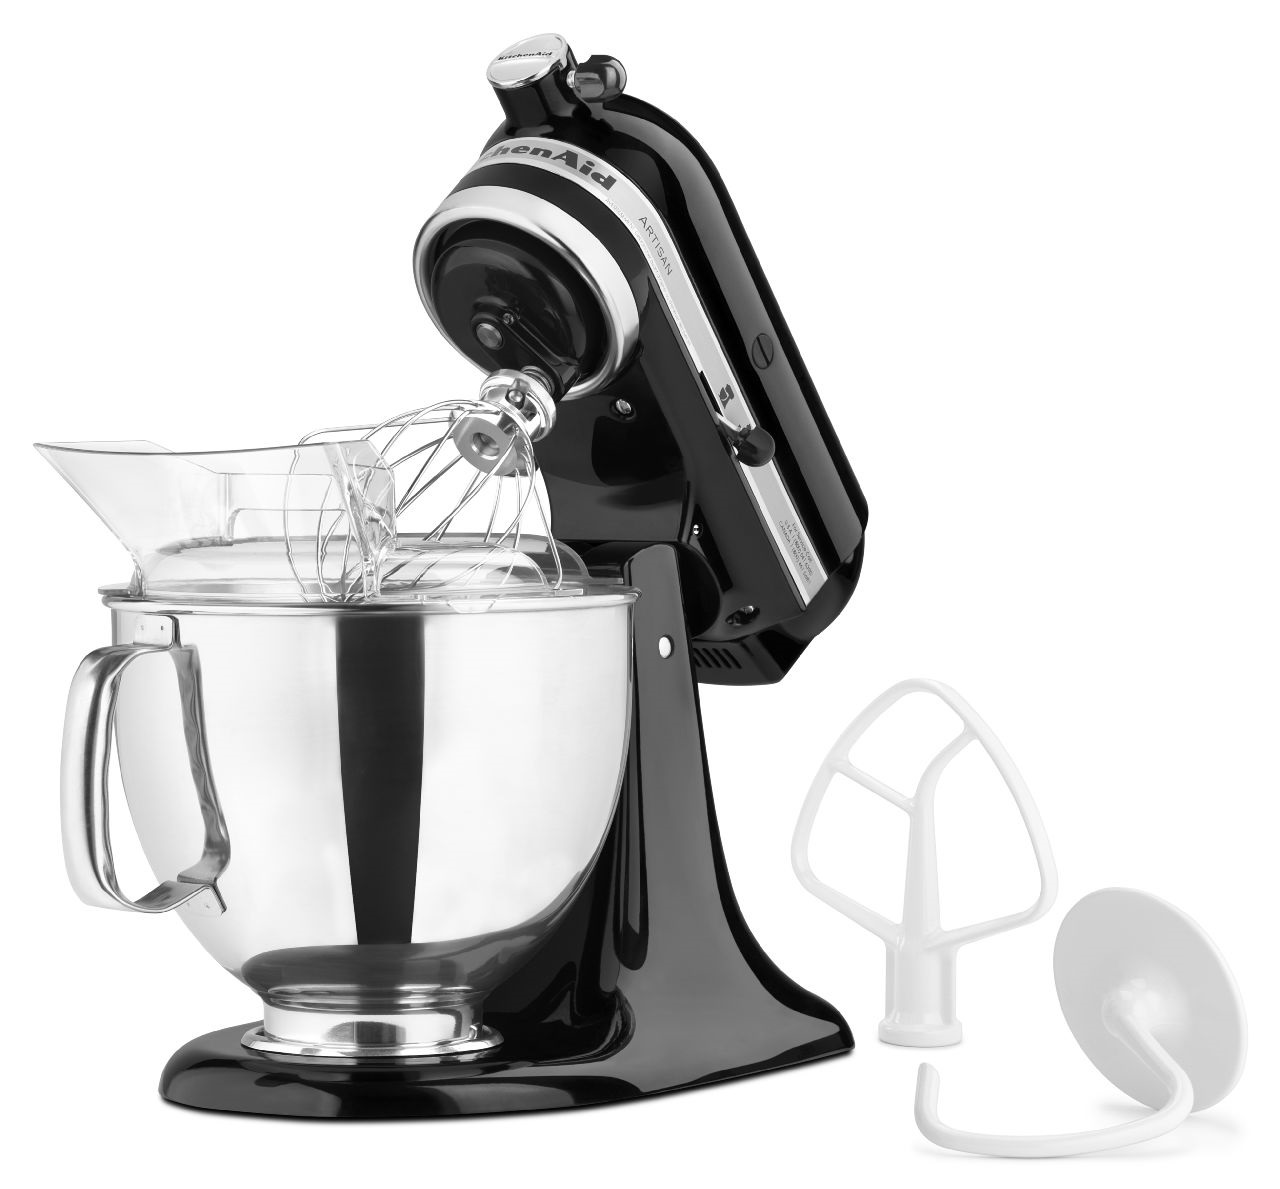 KitchenAid-Refurbished-Artisan-Series-5-Quart-Tilt-Head-Stand-Mixer-RRK150 thumbnail 67